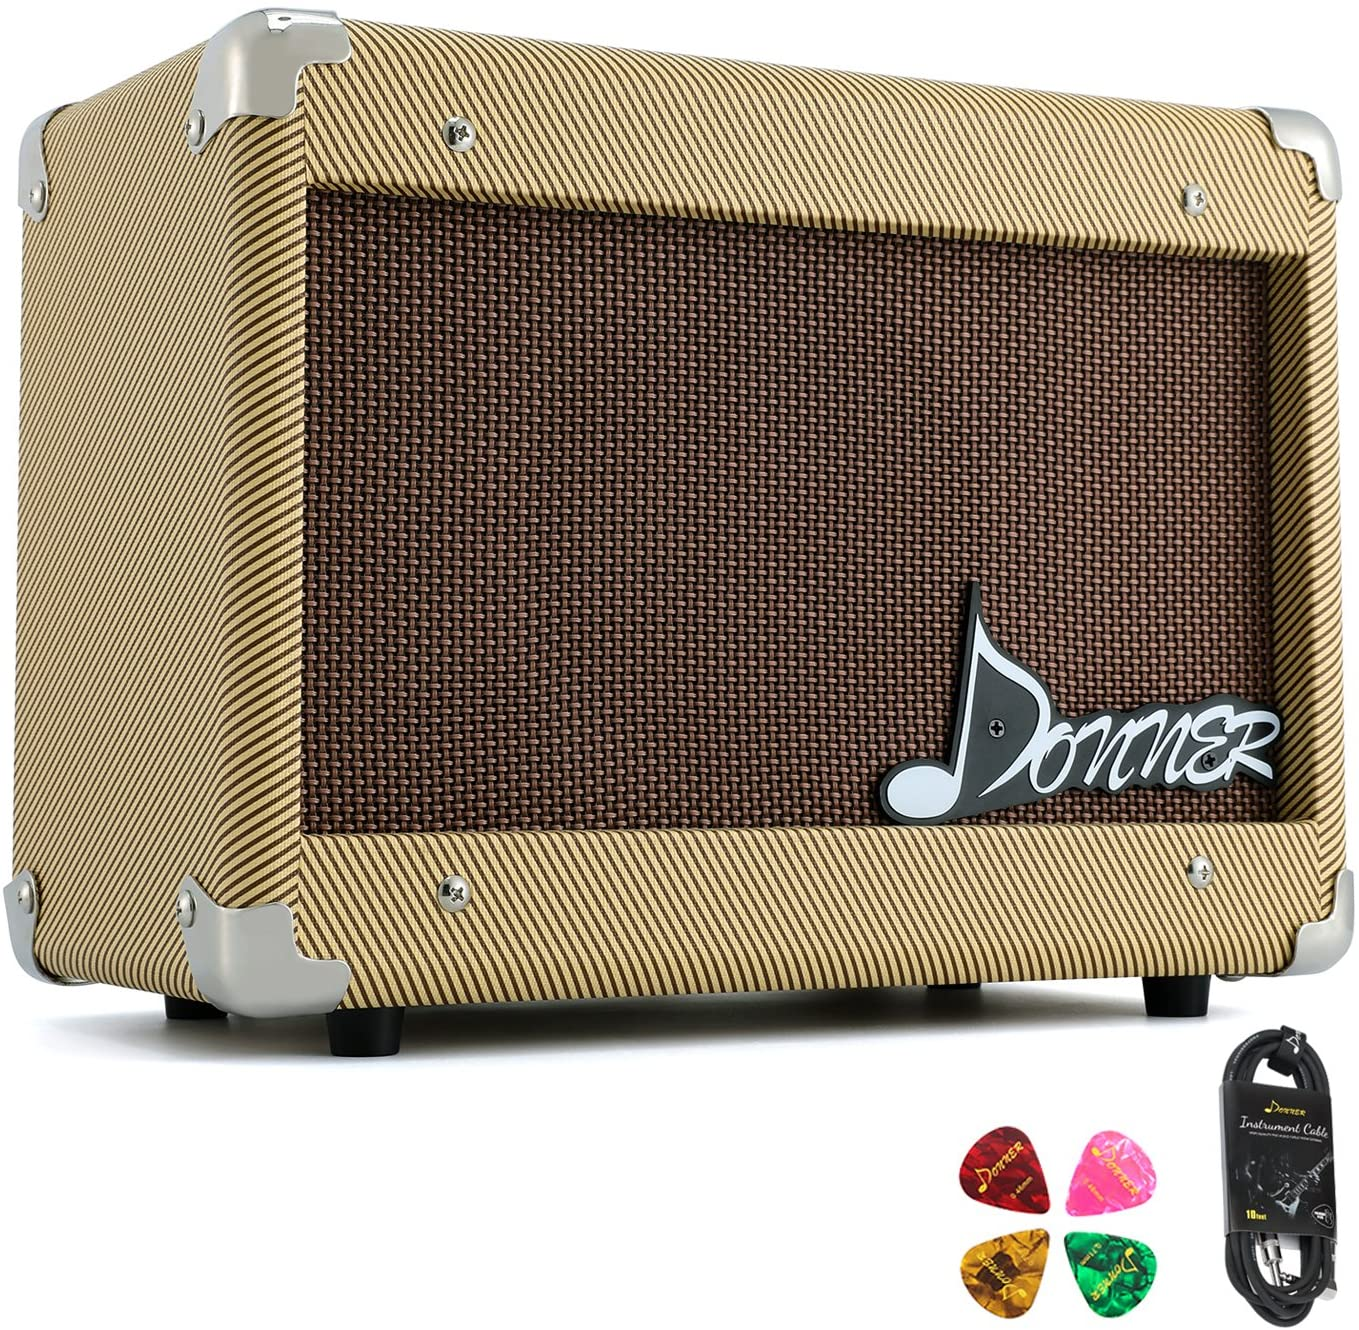 Donner 15W AMP Acoustic Guitar Amplifier Kit DGA-1 with 10 Feet Guitar Cable- Bass Guitar Amplifiers